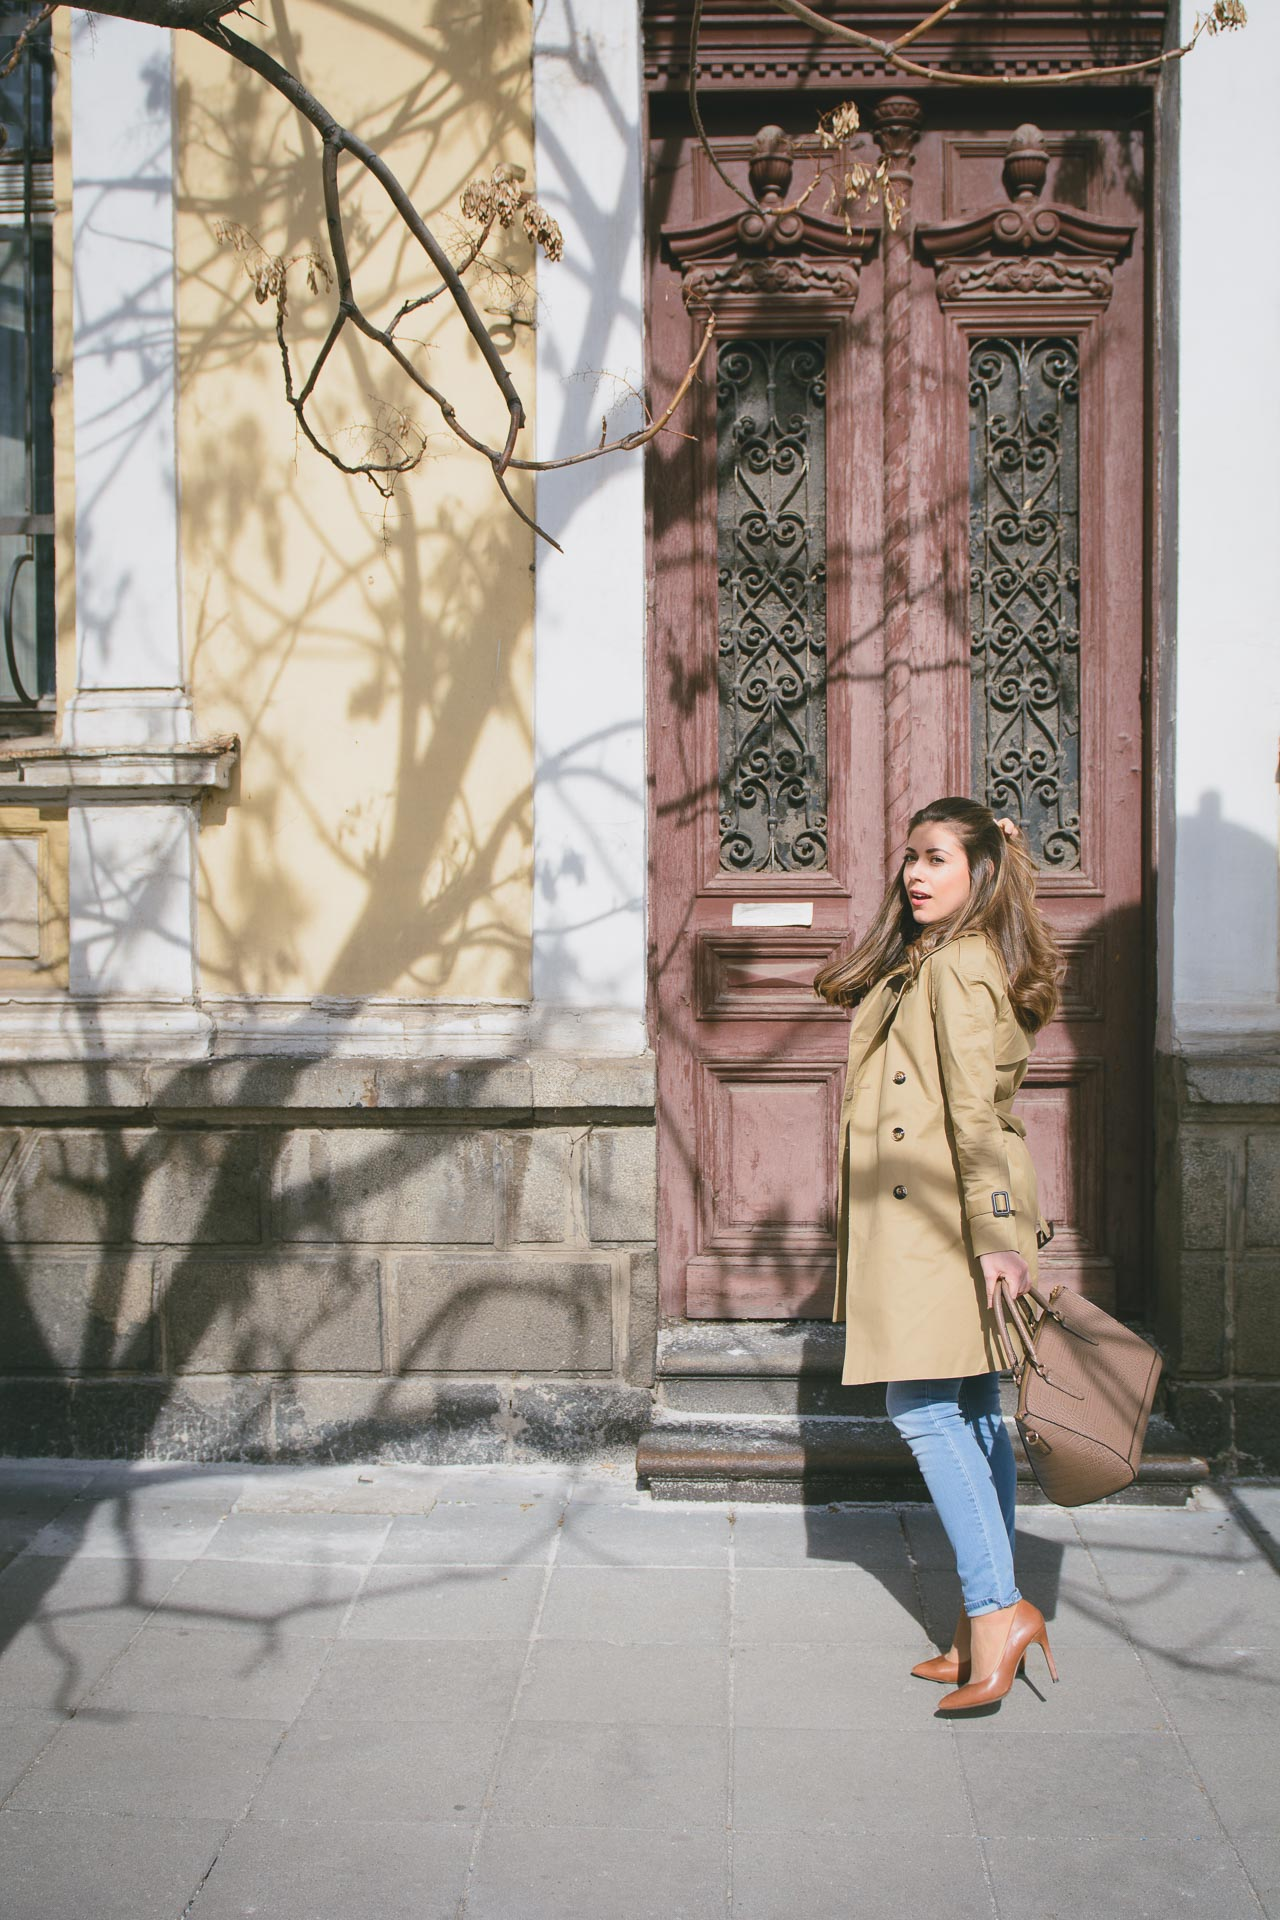 Wearing Tom Tailor trench coat